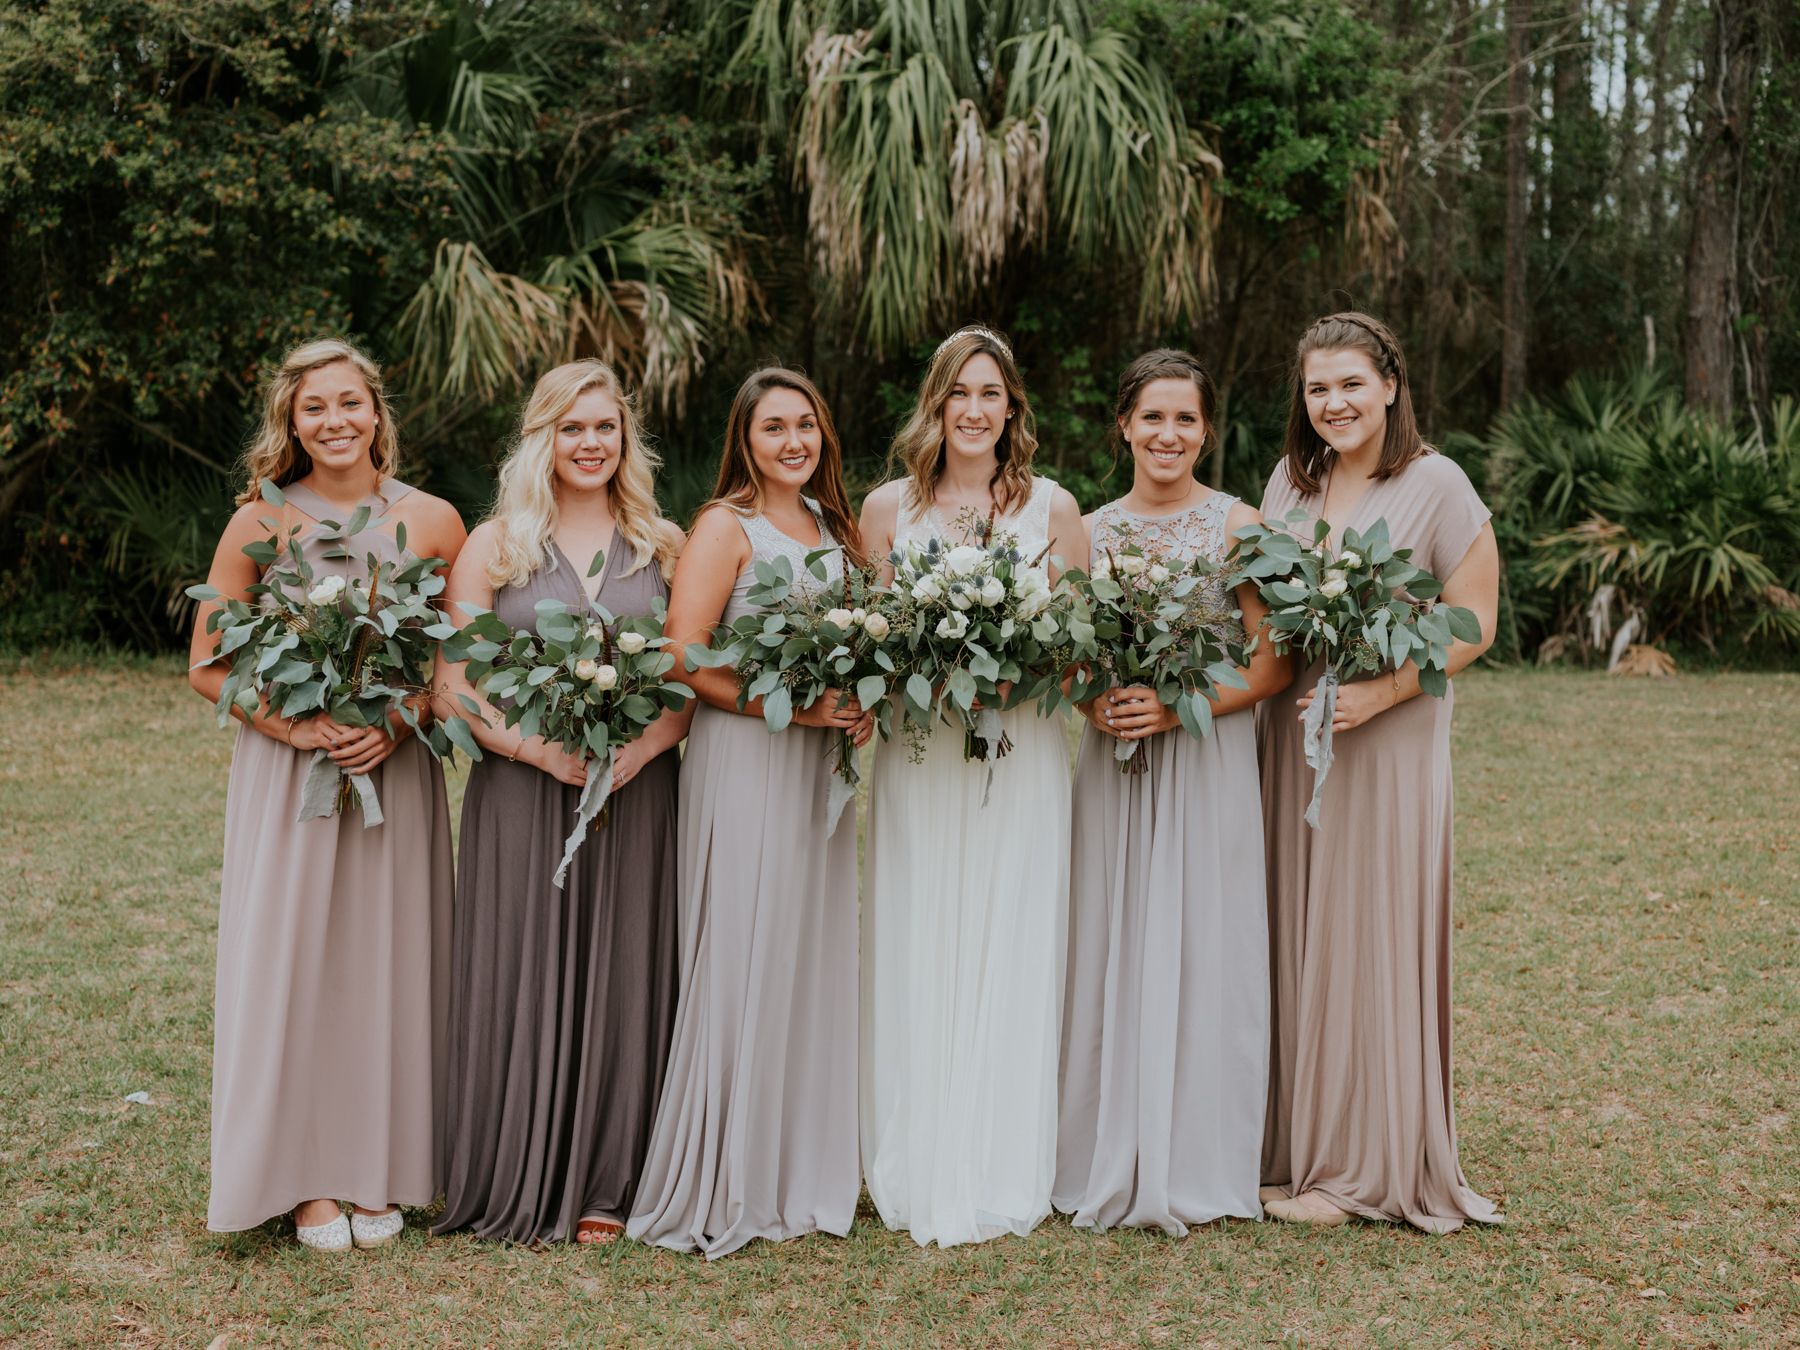 Bridesmaid Photos Eucalyptus Wedding Bouquets Mismatched Dresses Lavender Photo By Stolen Glimpses Seattle